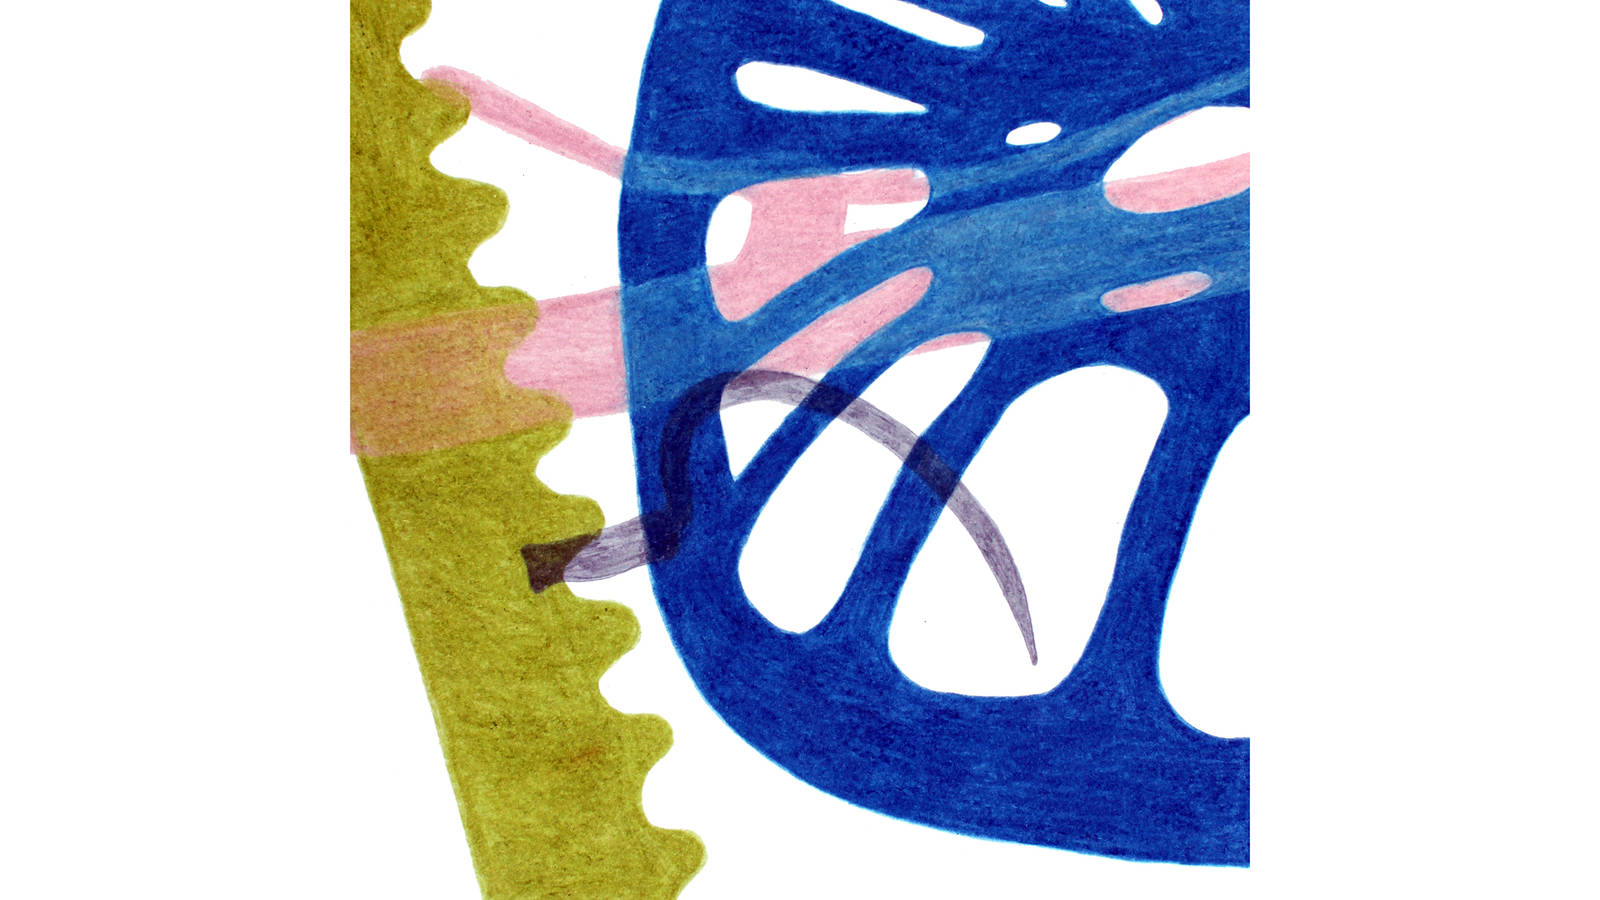 """<h3 style=""""text-align: center; padding: 50px;""""><span class=""""text-Intro-style"""">An abstract depiction of farm equipment, including a scythe, at Homestead National Monument of America. Colored pencil and graphite on paper, 2019.</span></h3>"""